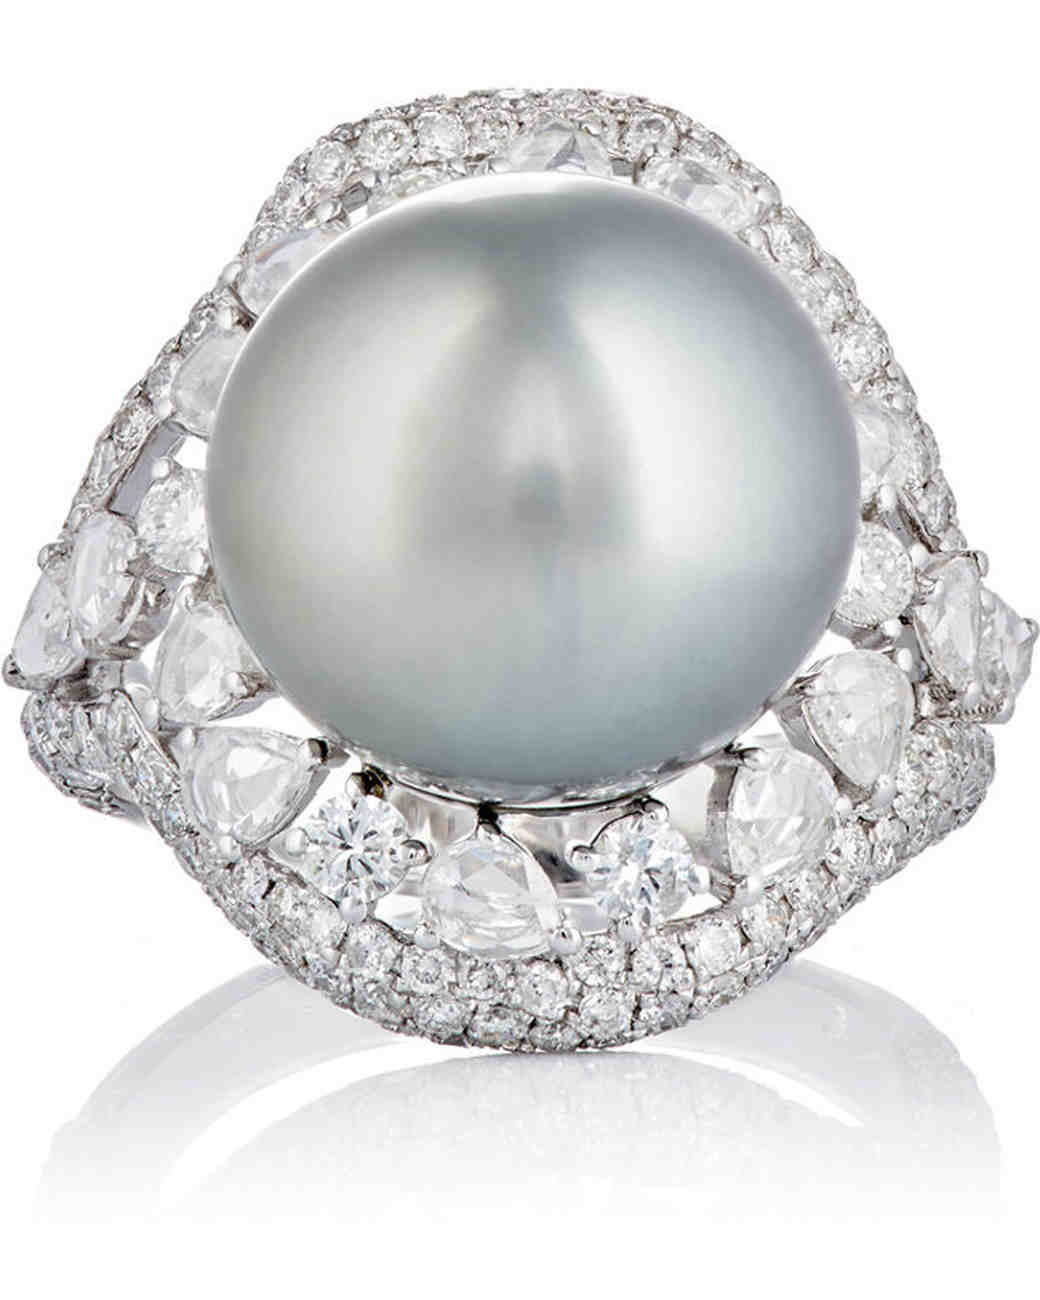 Zoe Pearl Engagement Ring